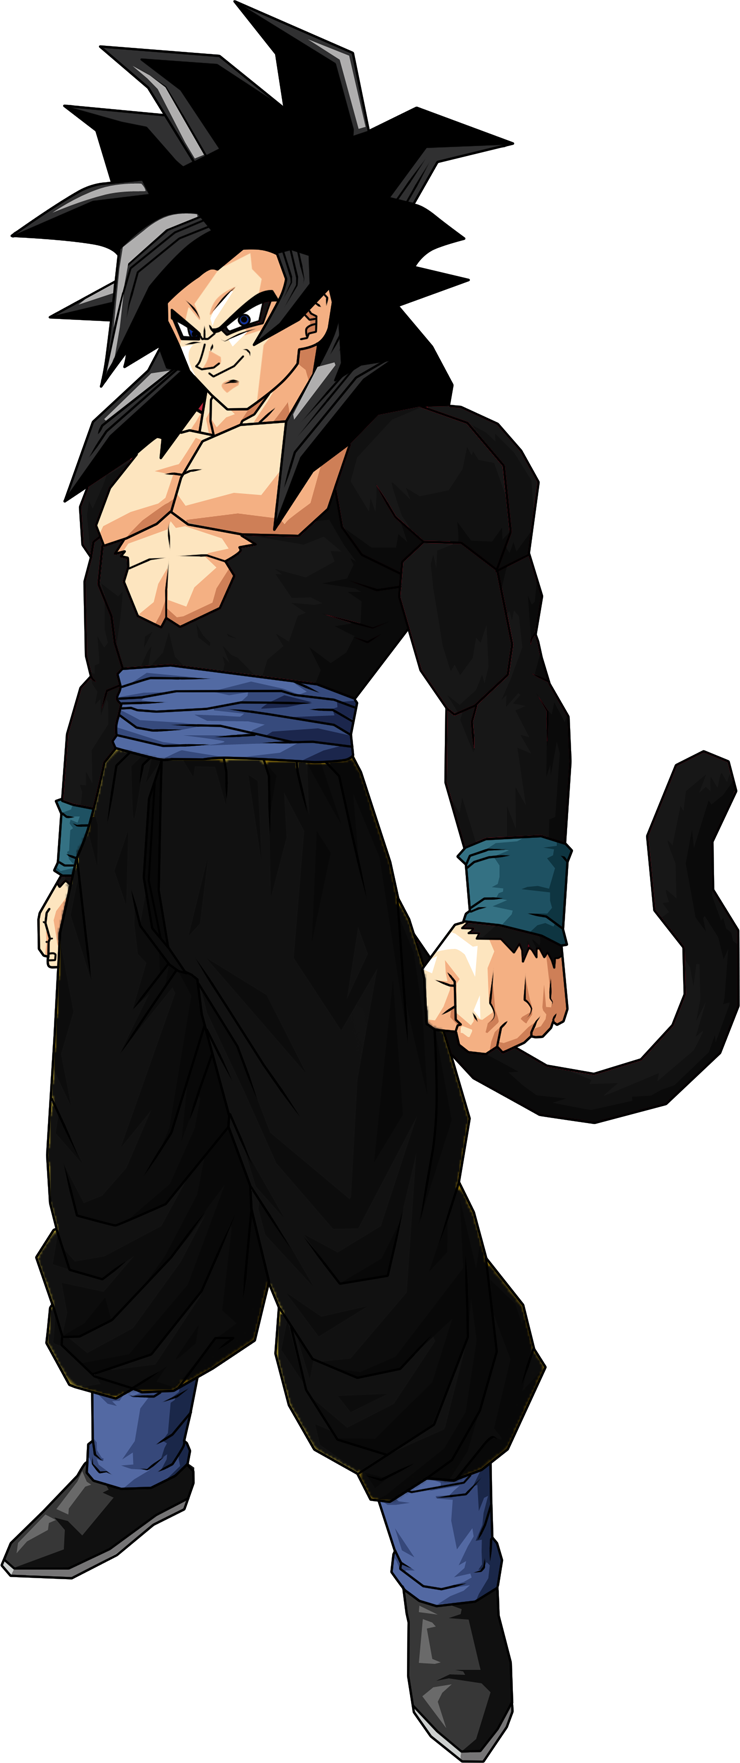 how to draw Android 16 from Dragon Ball Z step 0 together with  likewise gohan ssj4 lineart by jp7 by jeanpaul007 d2zlvjh likewise Over 9000 Manga its over 9000 30082728 396 370 in addition  moreover evil goku blazejecar style by nassif9000 d49il65 furthermore lineart   broly lssj by el maky z d5koa2m together with  furthermore Trunks GT SSJ likewise f5552cdd6b6afcd7416a46152d612e21 besides Screen Shot 2015 06 16 at 4 49 16 PM. on characters dragon ball z bardock coloring pages